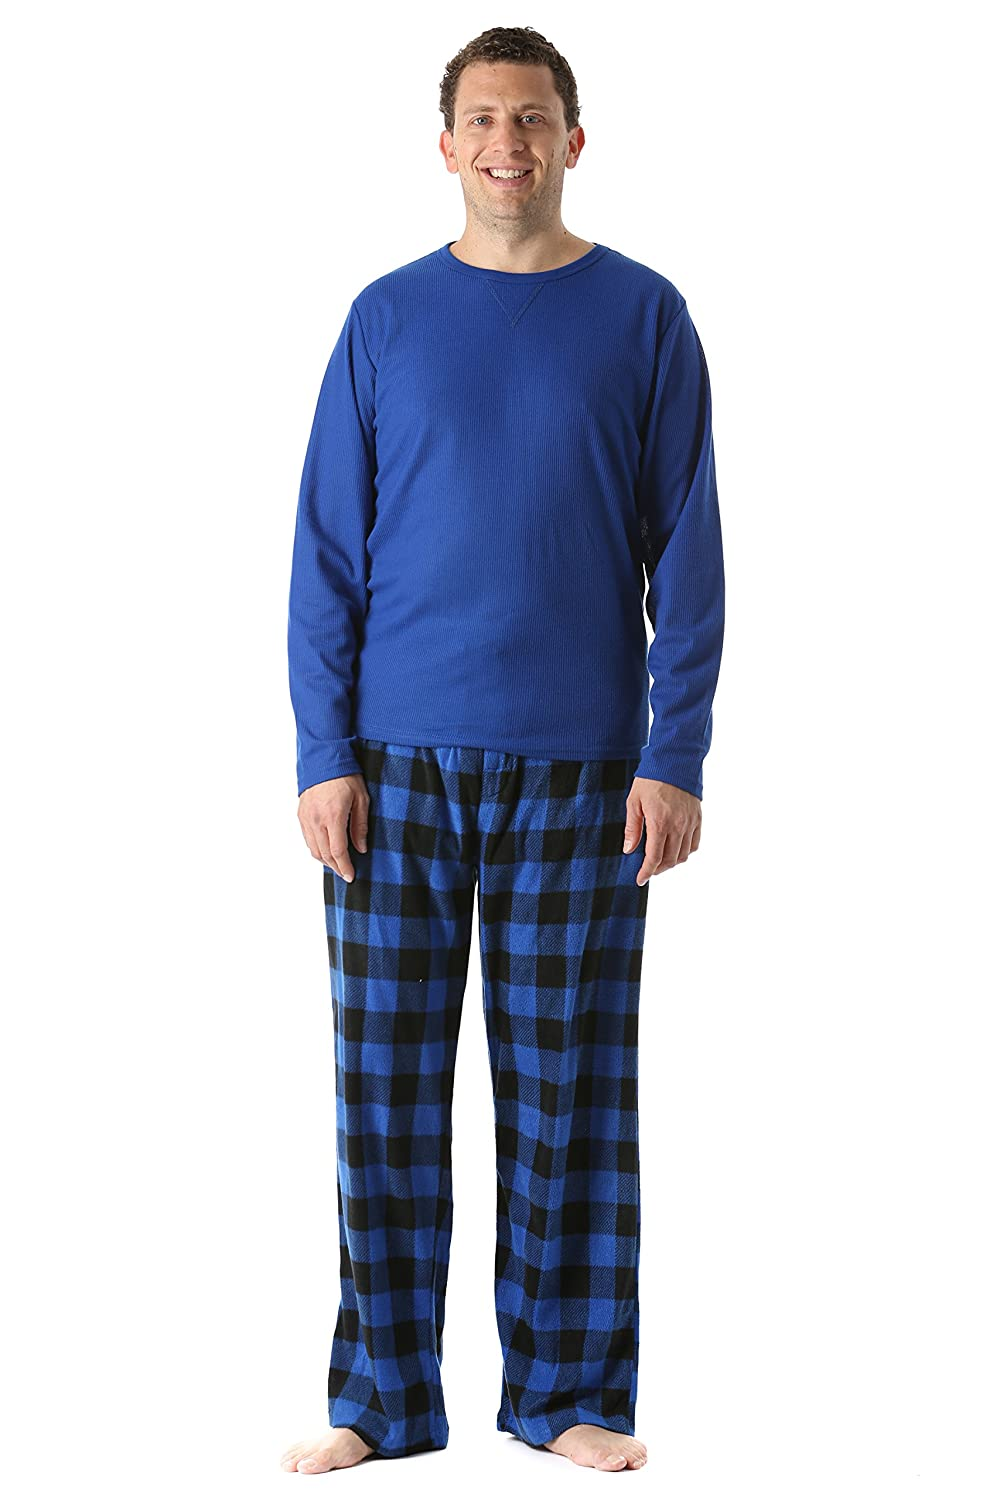 #followme Polar Fleece Pajama Pants Set for Men/Sleepwear/PJs